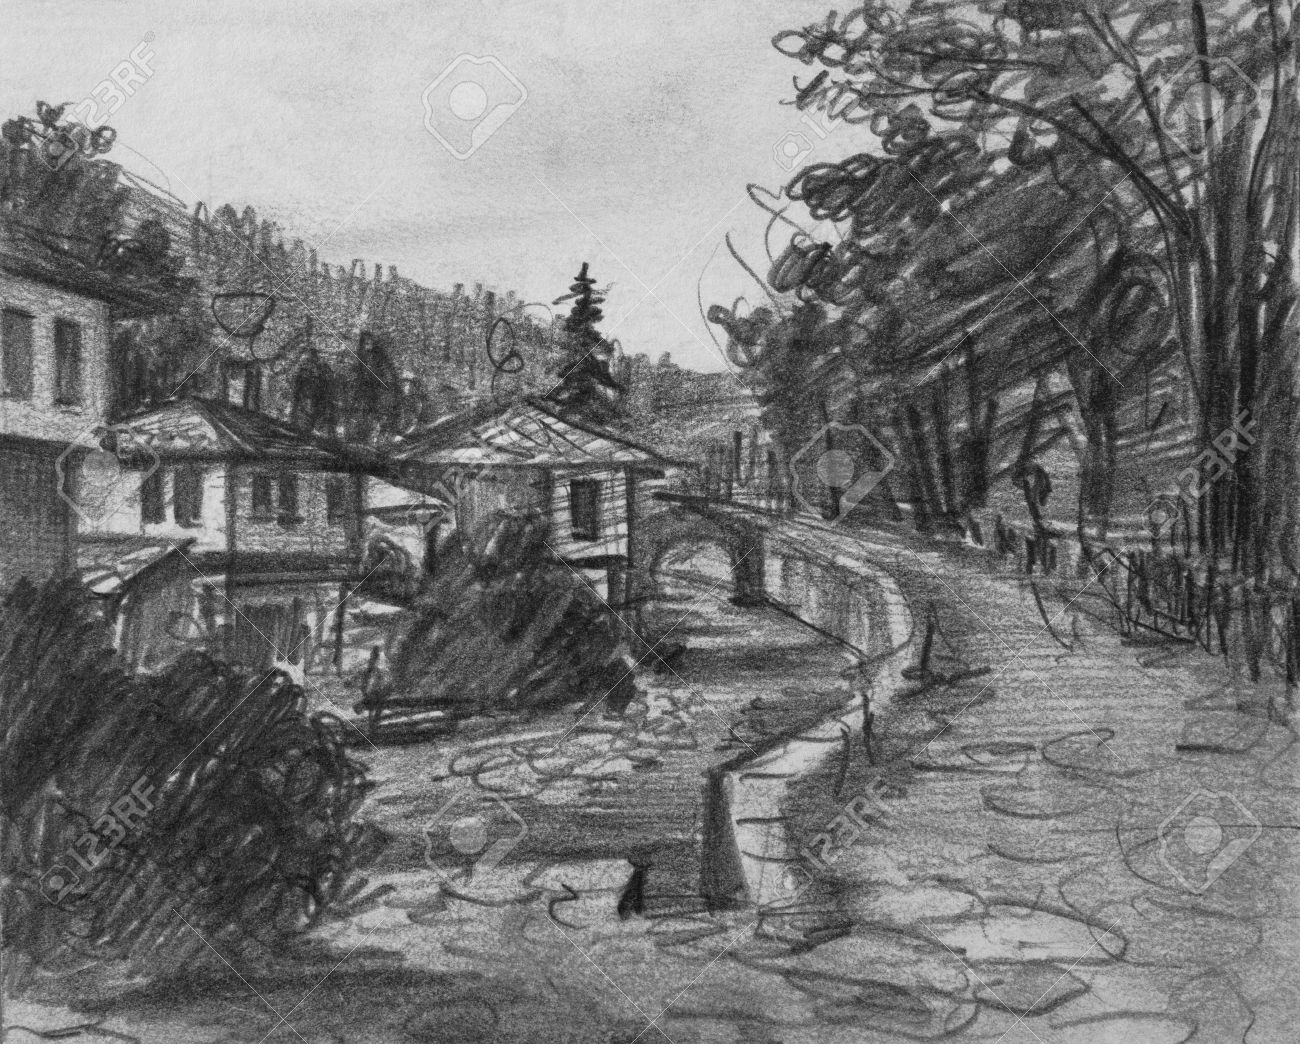 Pencil black and white drawing of traditional old bulgarian houses